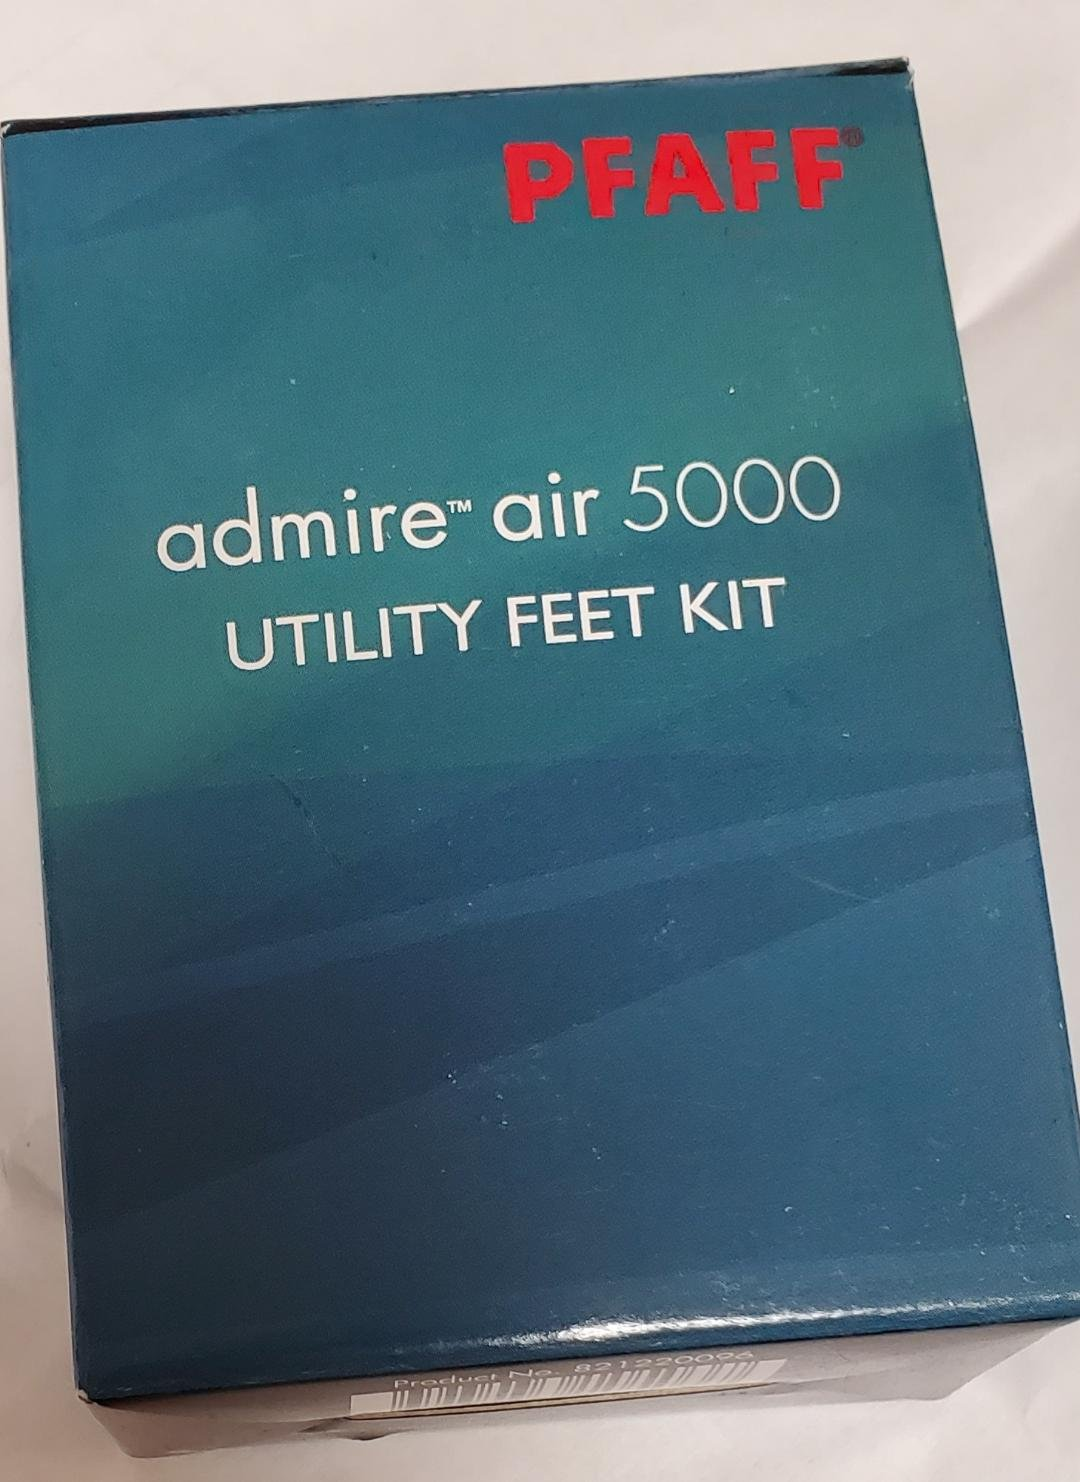 Pfaff Admire Air 5000 Utility Feet Kit